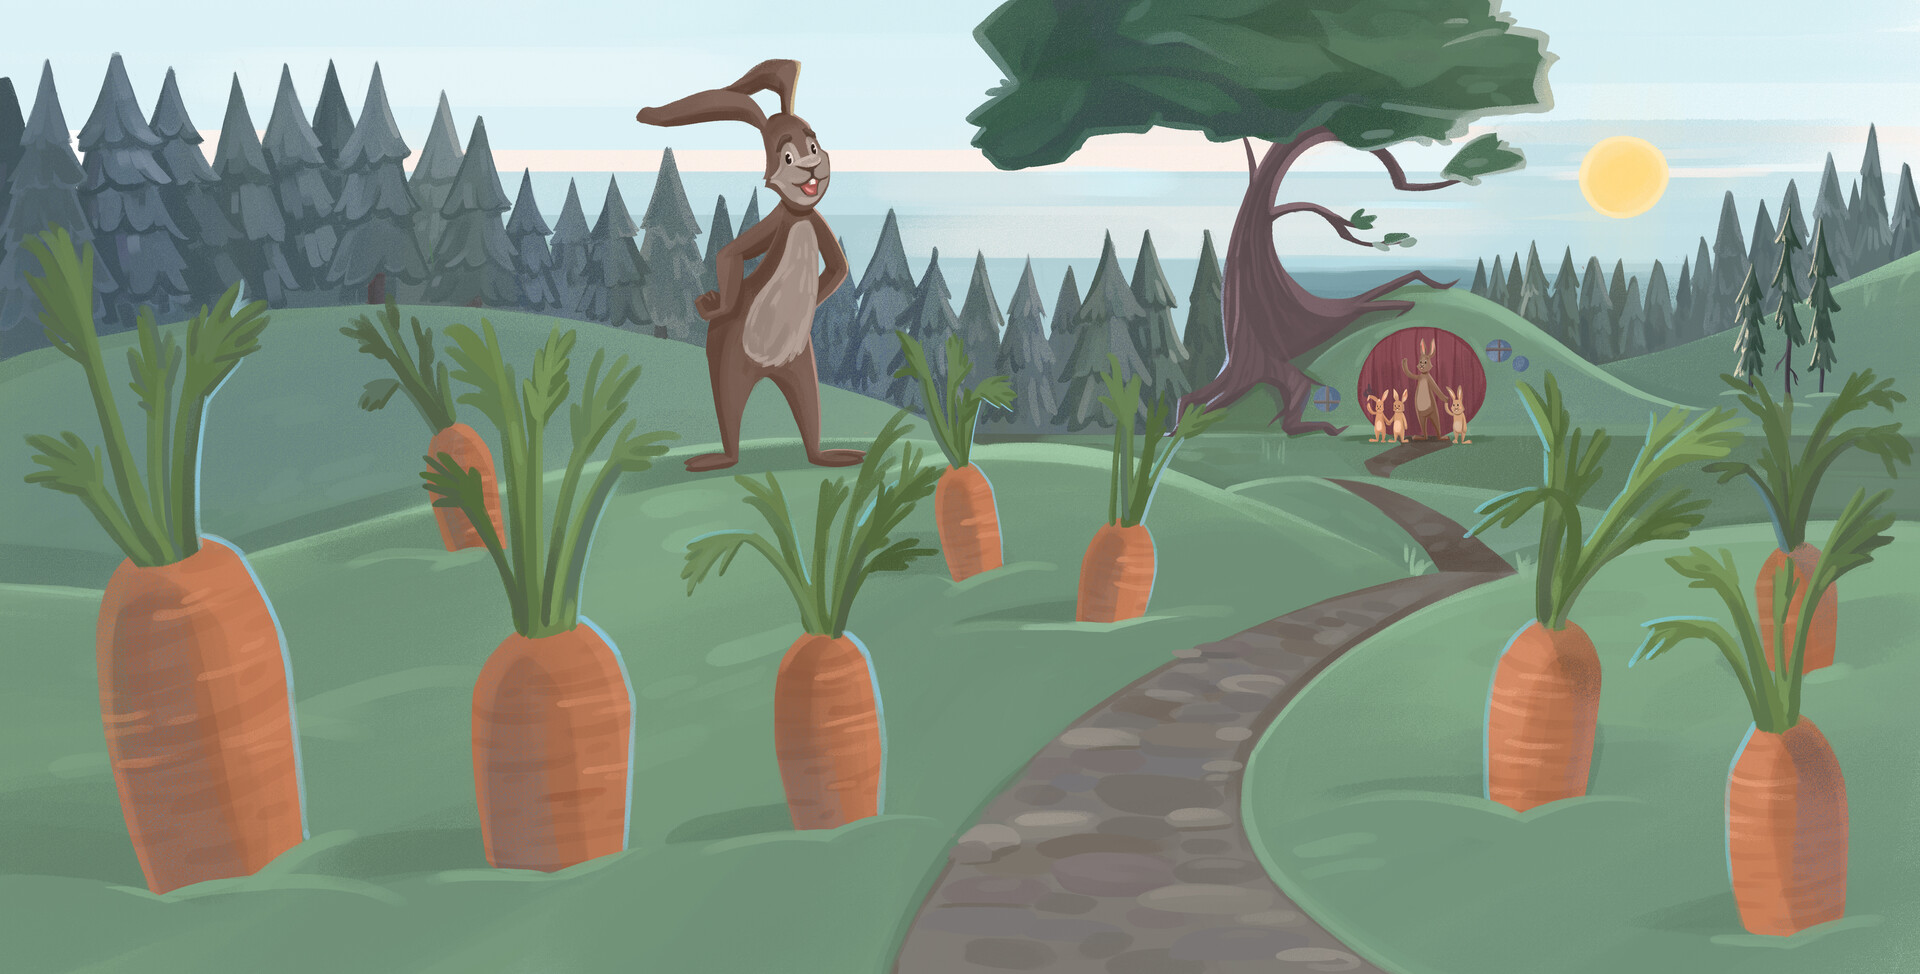 He would plant his own carrots!